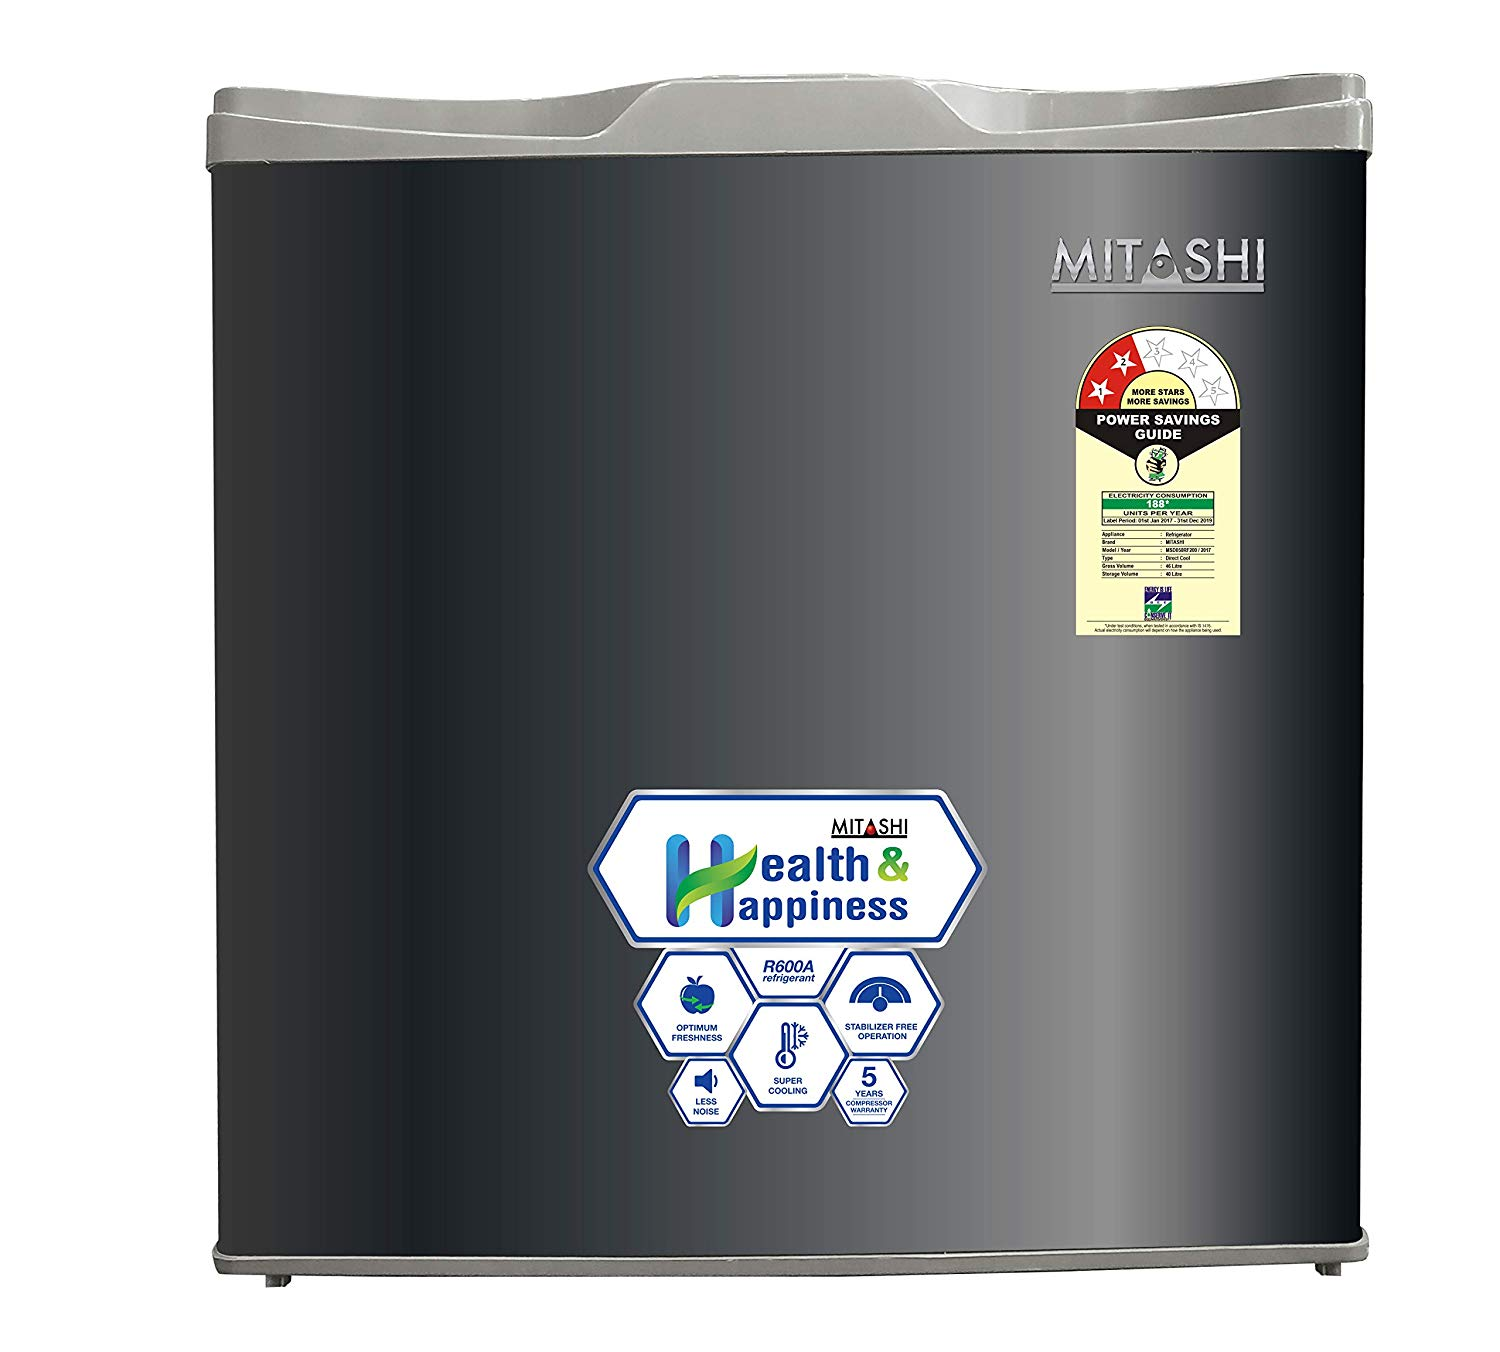 Top 10 Best Mini Fridge(Refrigerator) in India at Best Price 2019